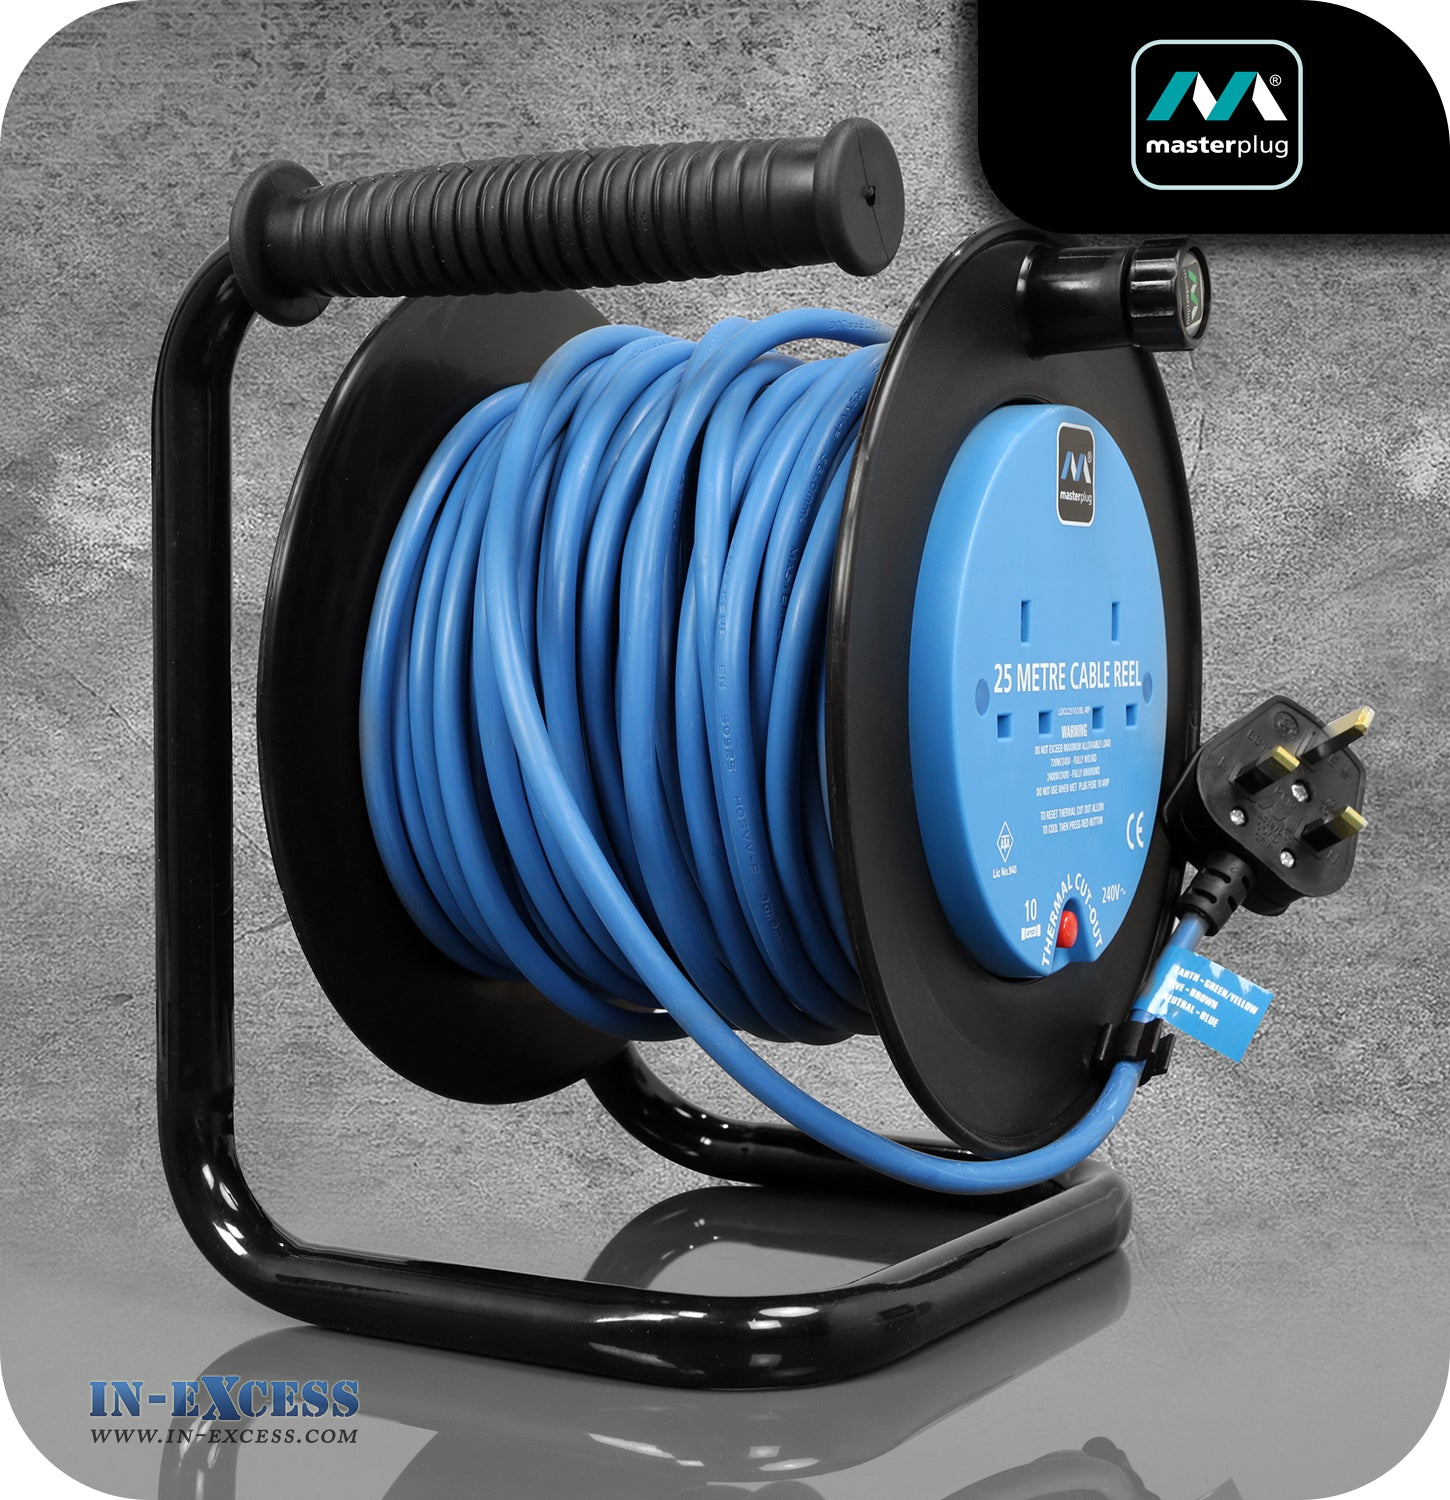 Masterplug 25m Cable Reel 10A 240V Thermal Cut-out - 2 Sockets - In ...